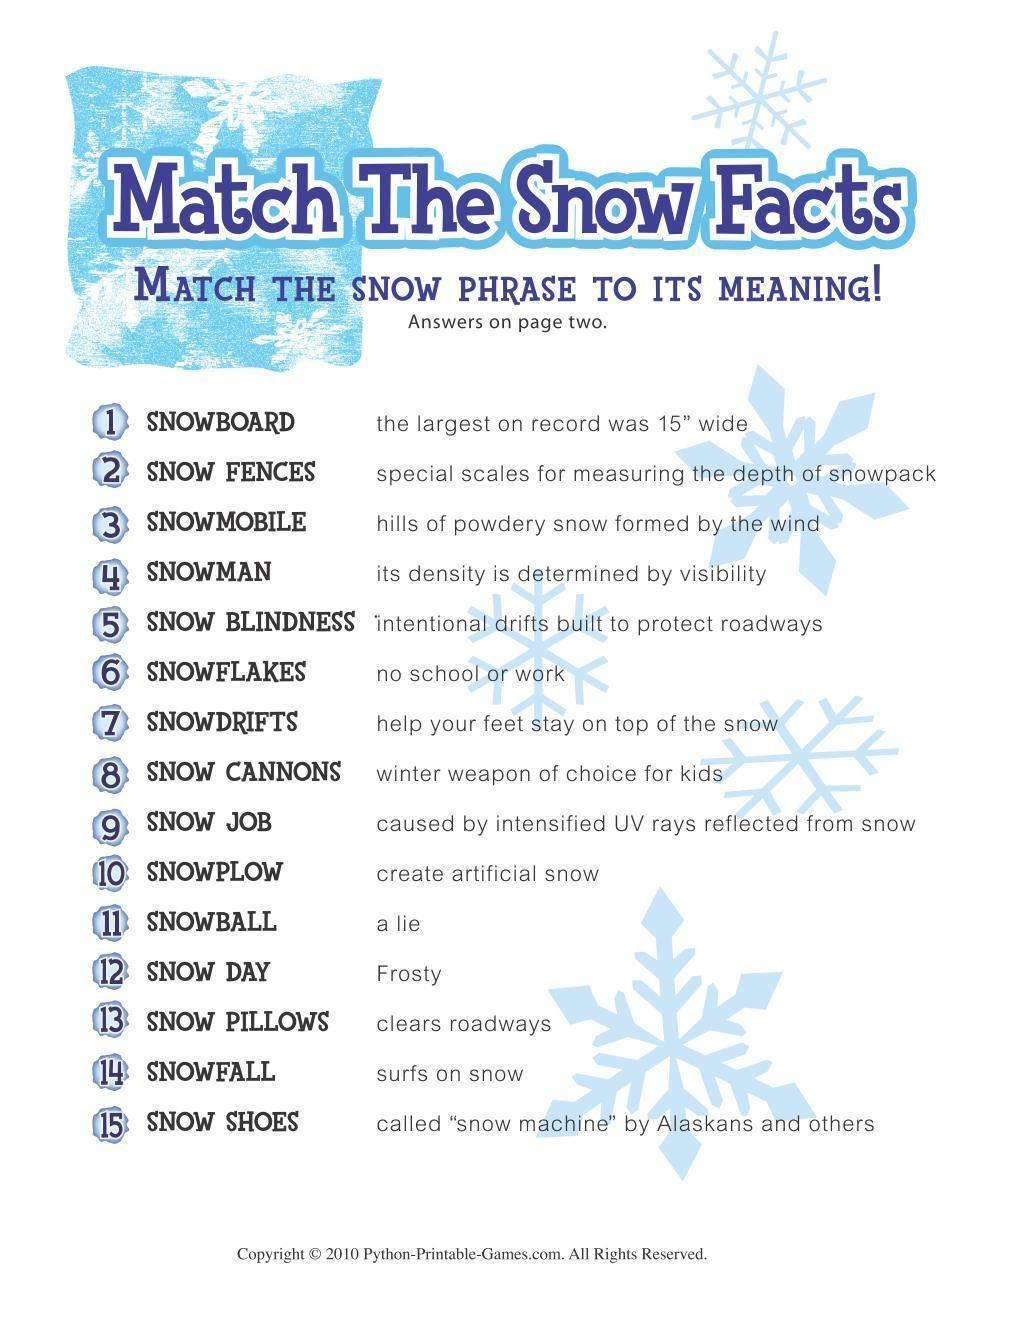 Free Printable Winter Game Match The Snow Facts Download | Winter - Free Printable Trivia Questions For Seniors